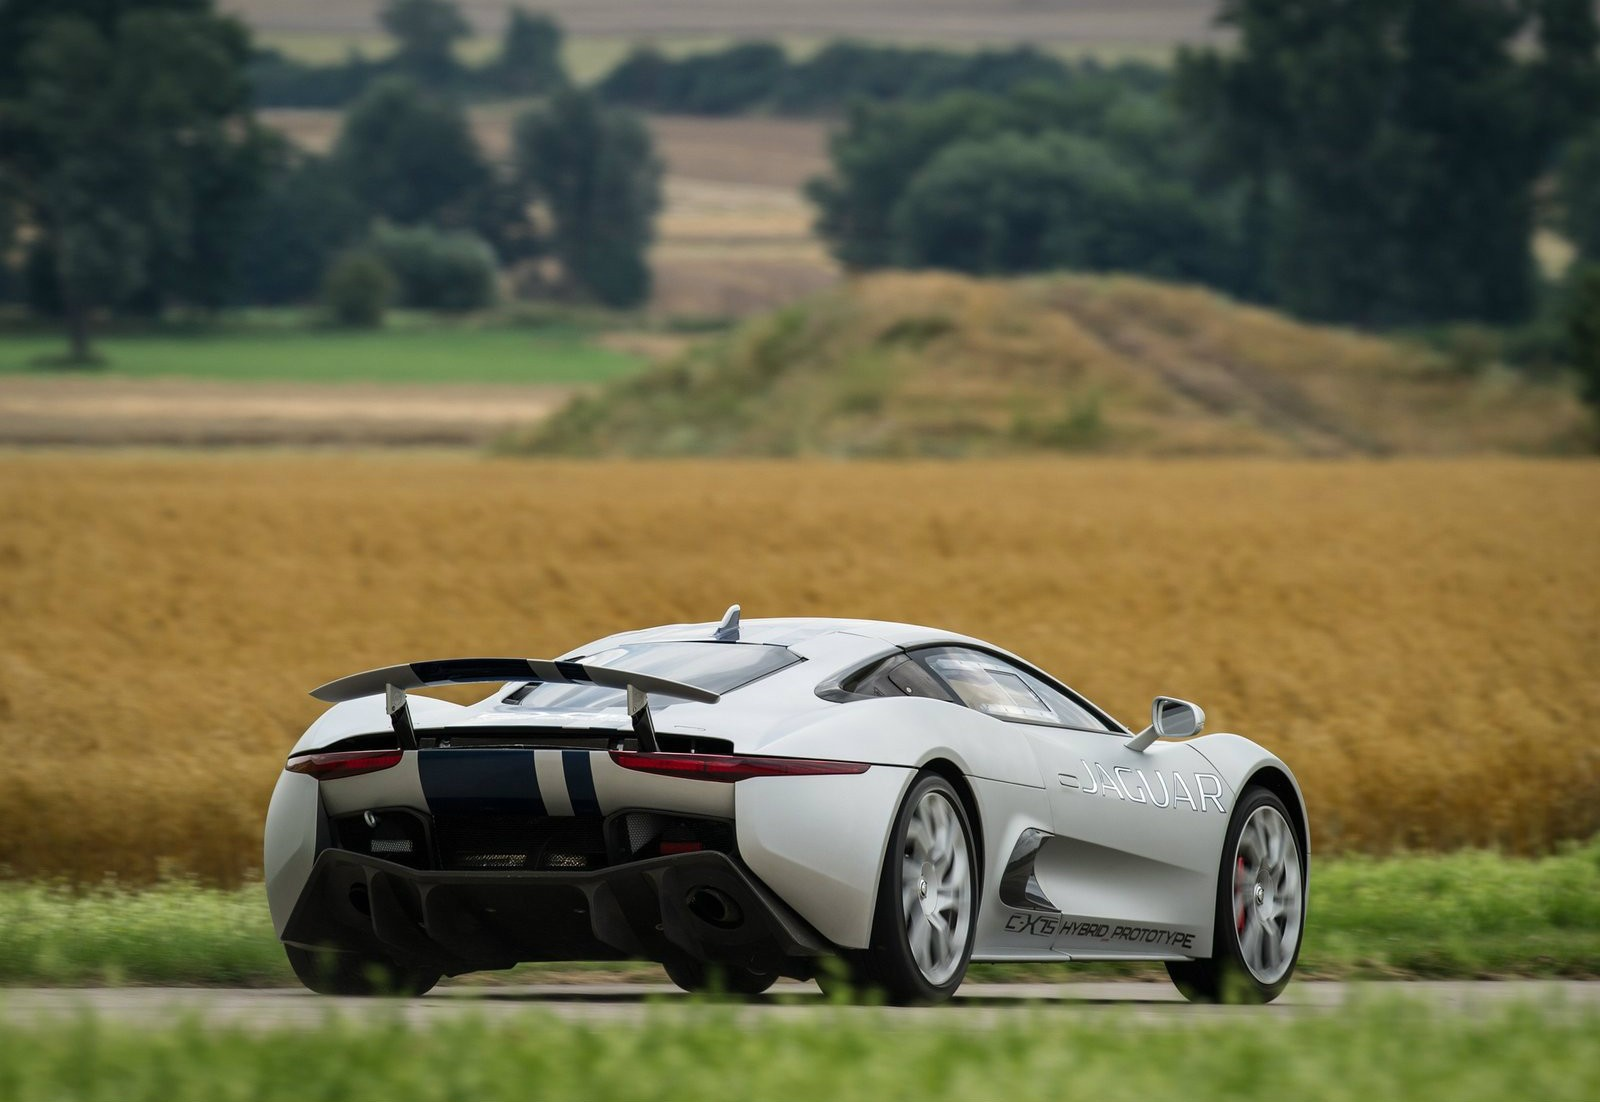 James Bond SPECTRE To Star Jaguar C X75 Its The Baddies